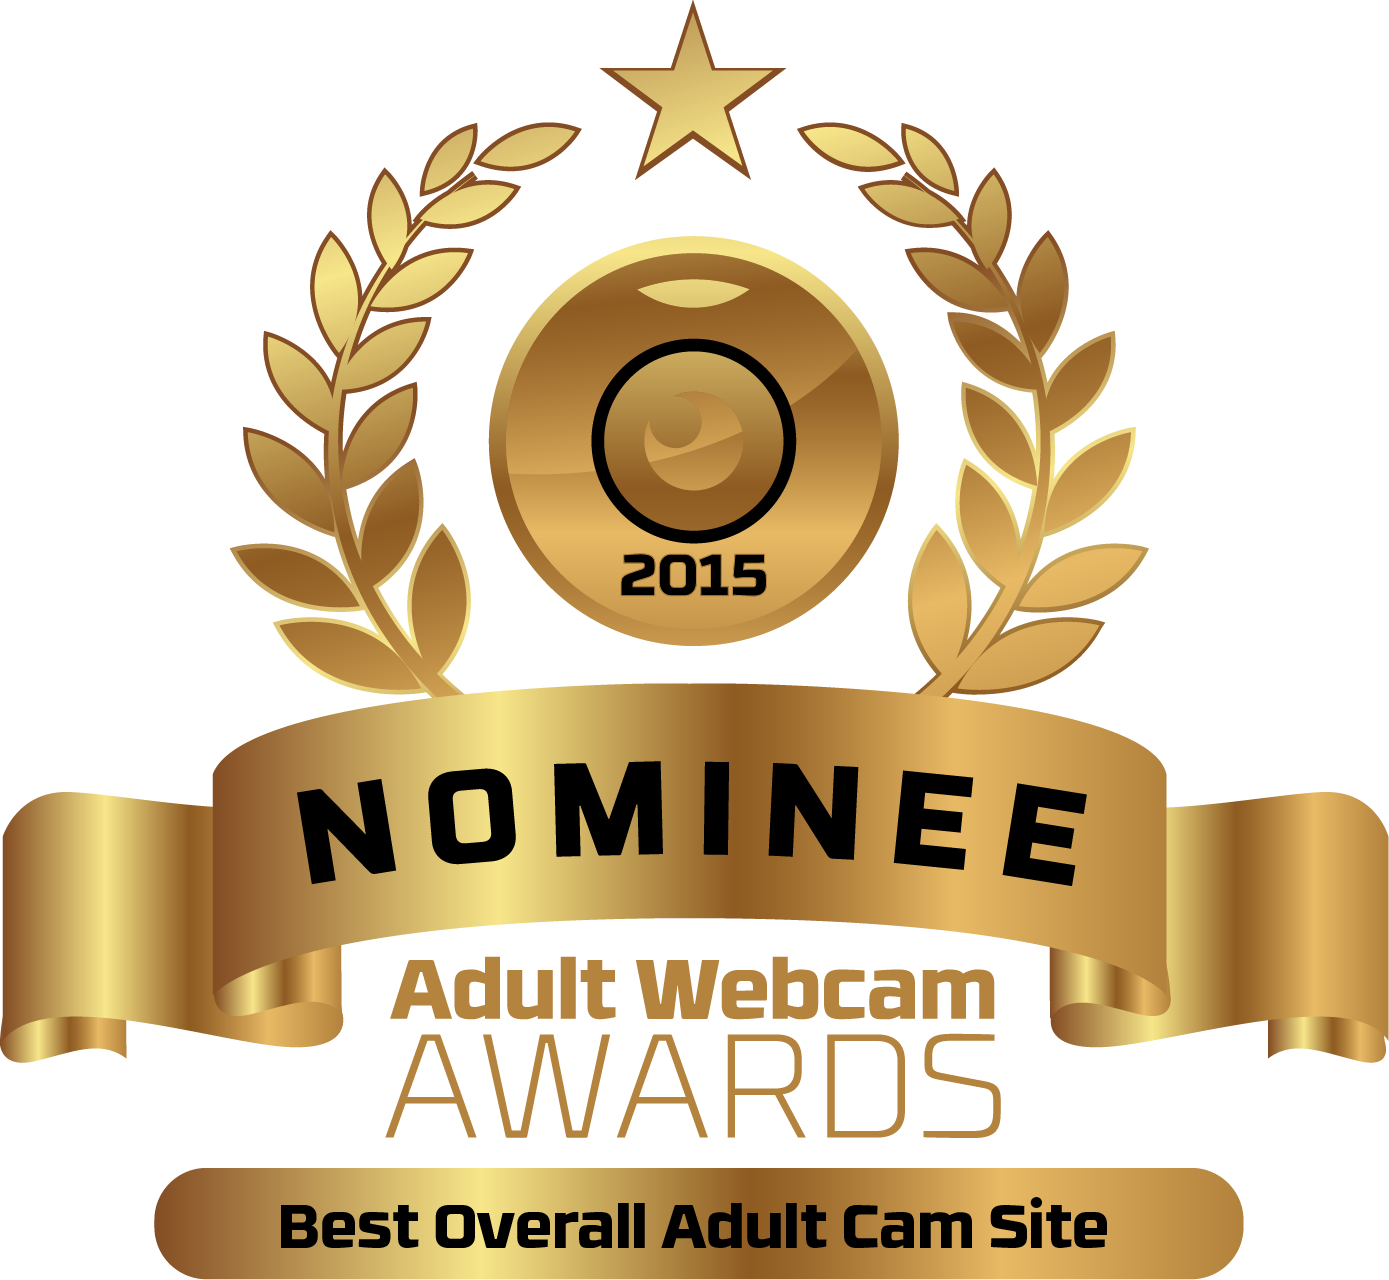 Best Overall Adult Webcam Site Nominee